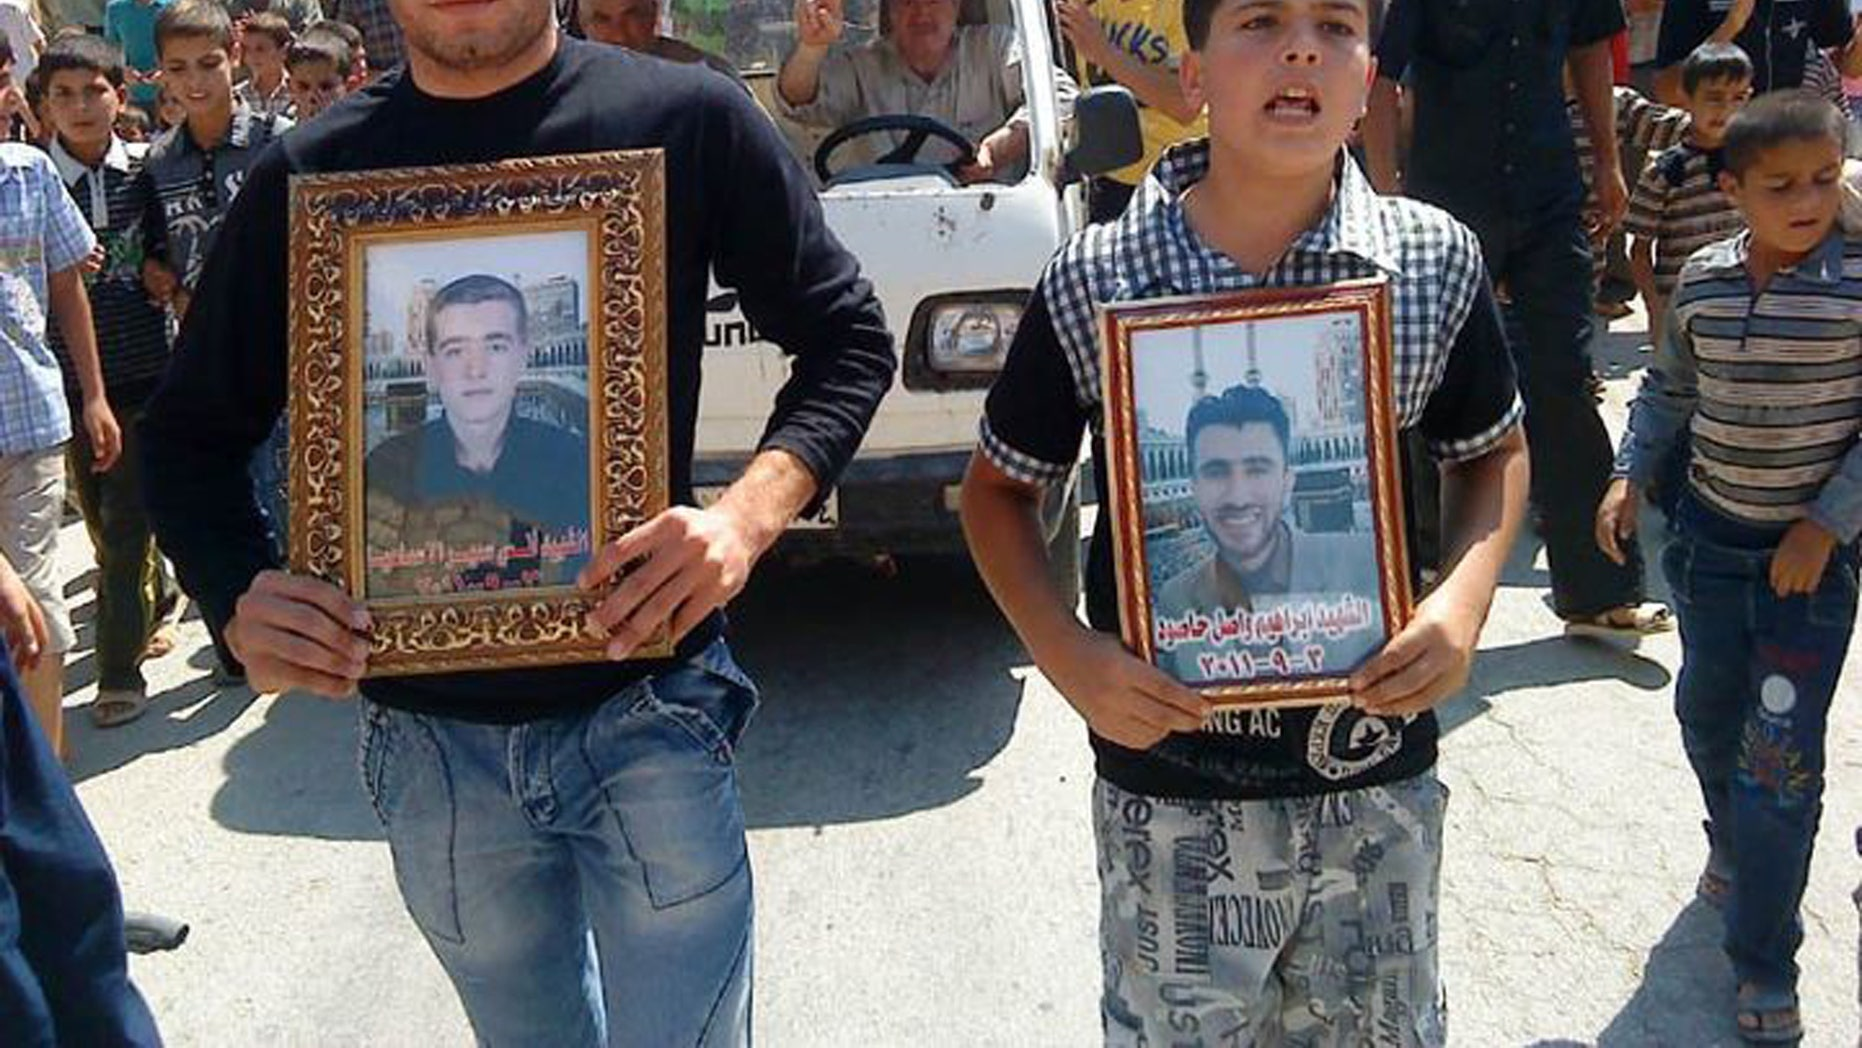 Anti-Syrian President Bashar Assad protesters hold portraits for their dead relatives killed in recent violence, as they march during a demonstration against the Syrian regime, at Maaret Harma village, in Edlib province, Syria, on Friday Sept. 9, 2011.